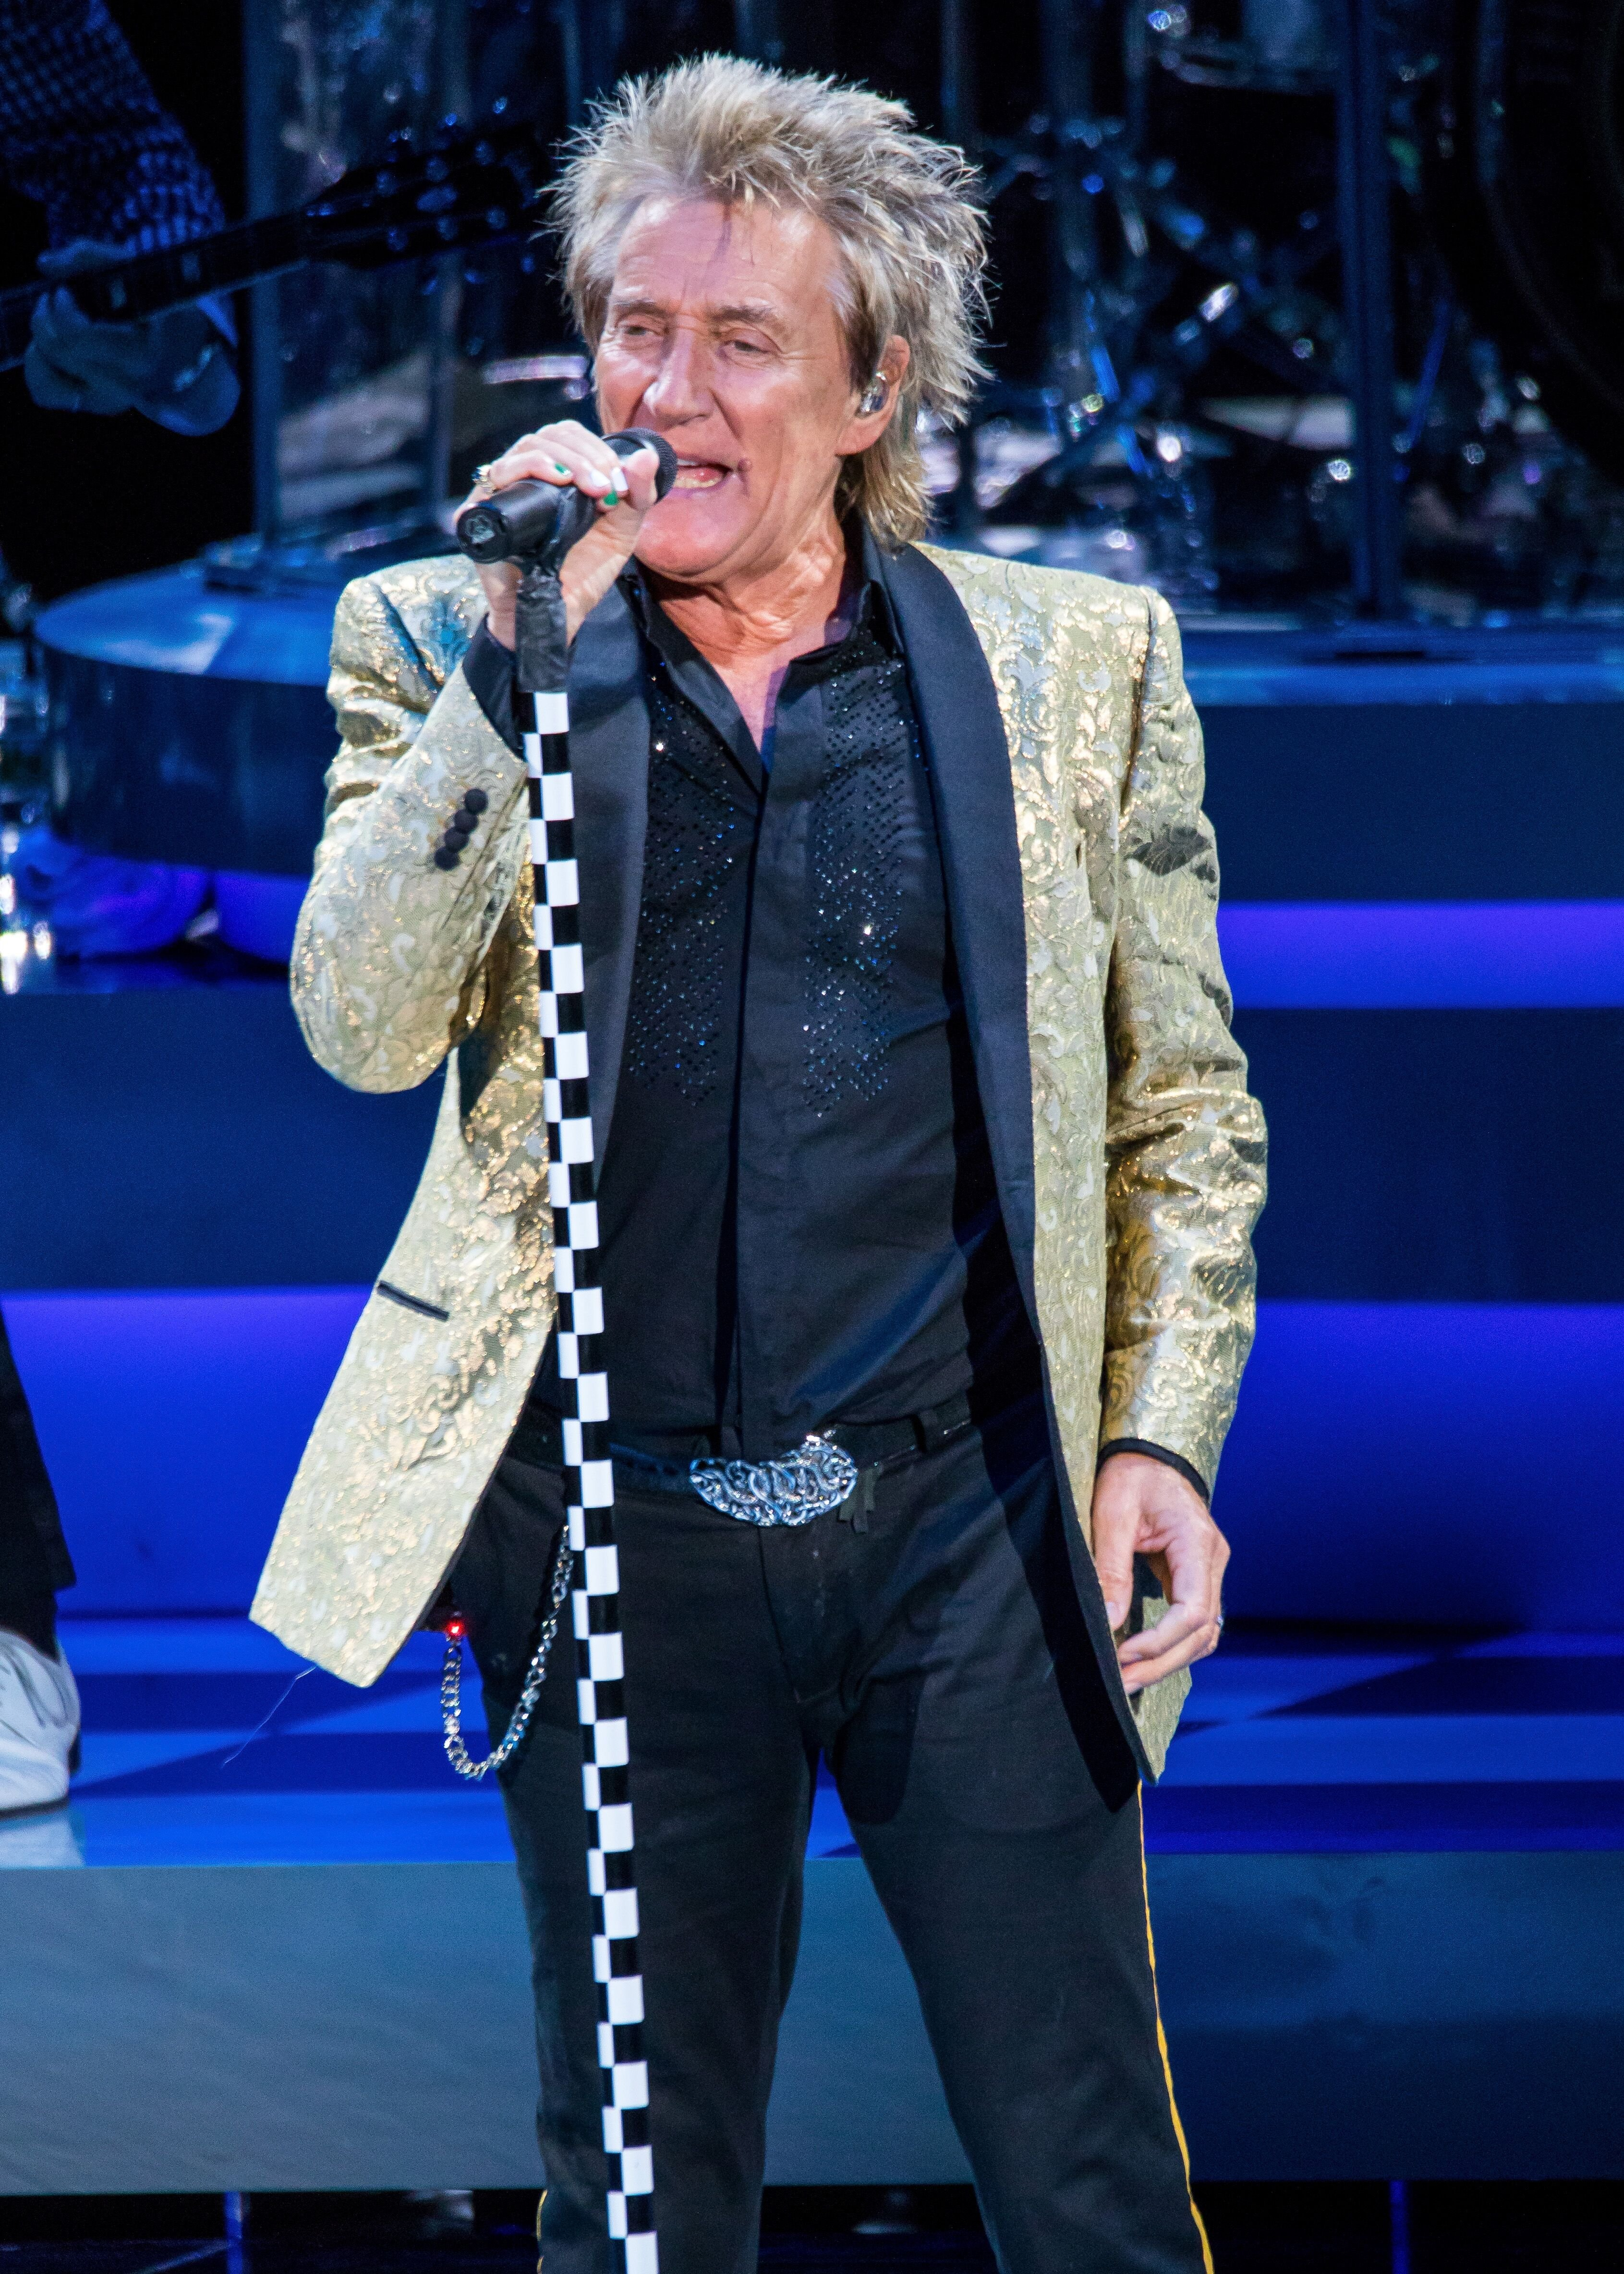 Rod Stewart at DTE Energy Music Theater in 2017 in Clarkston, Michigan   Source: Getty Images